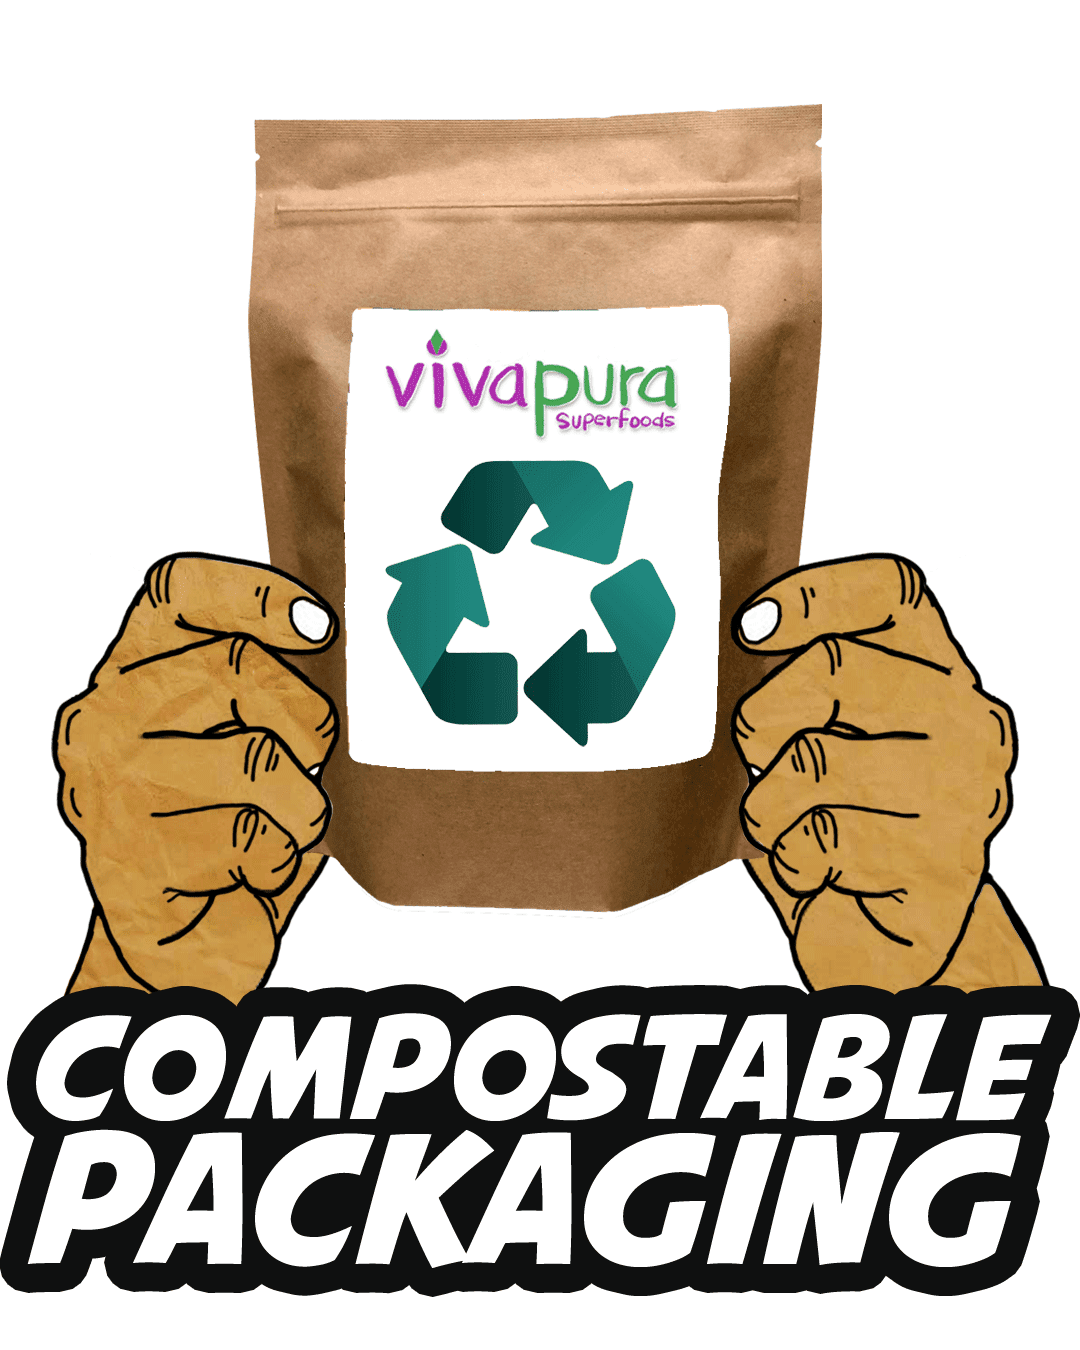 100% Compostable Packaging that works.